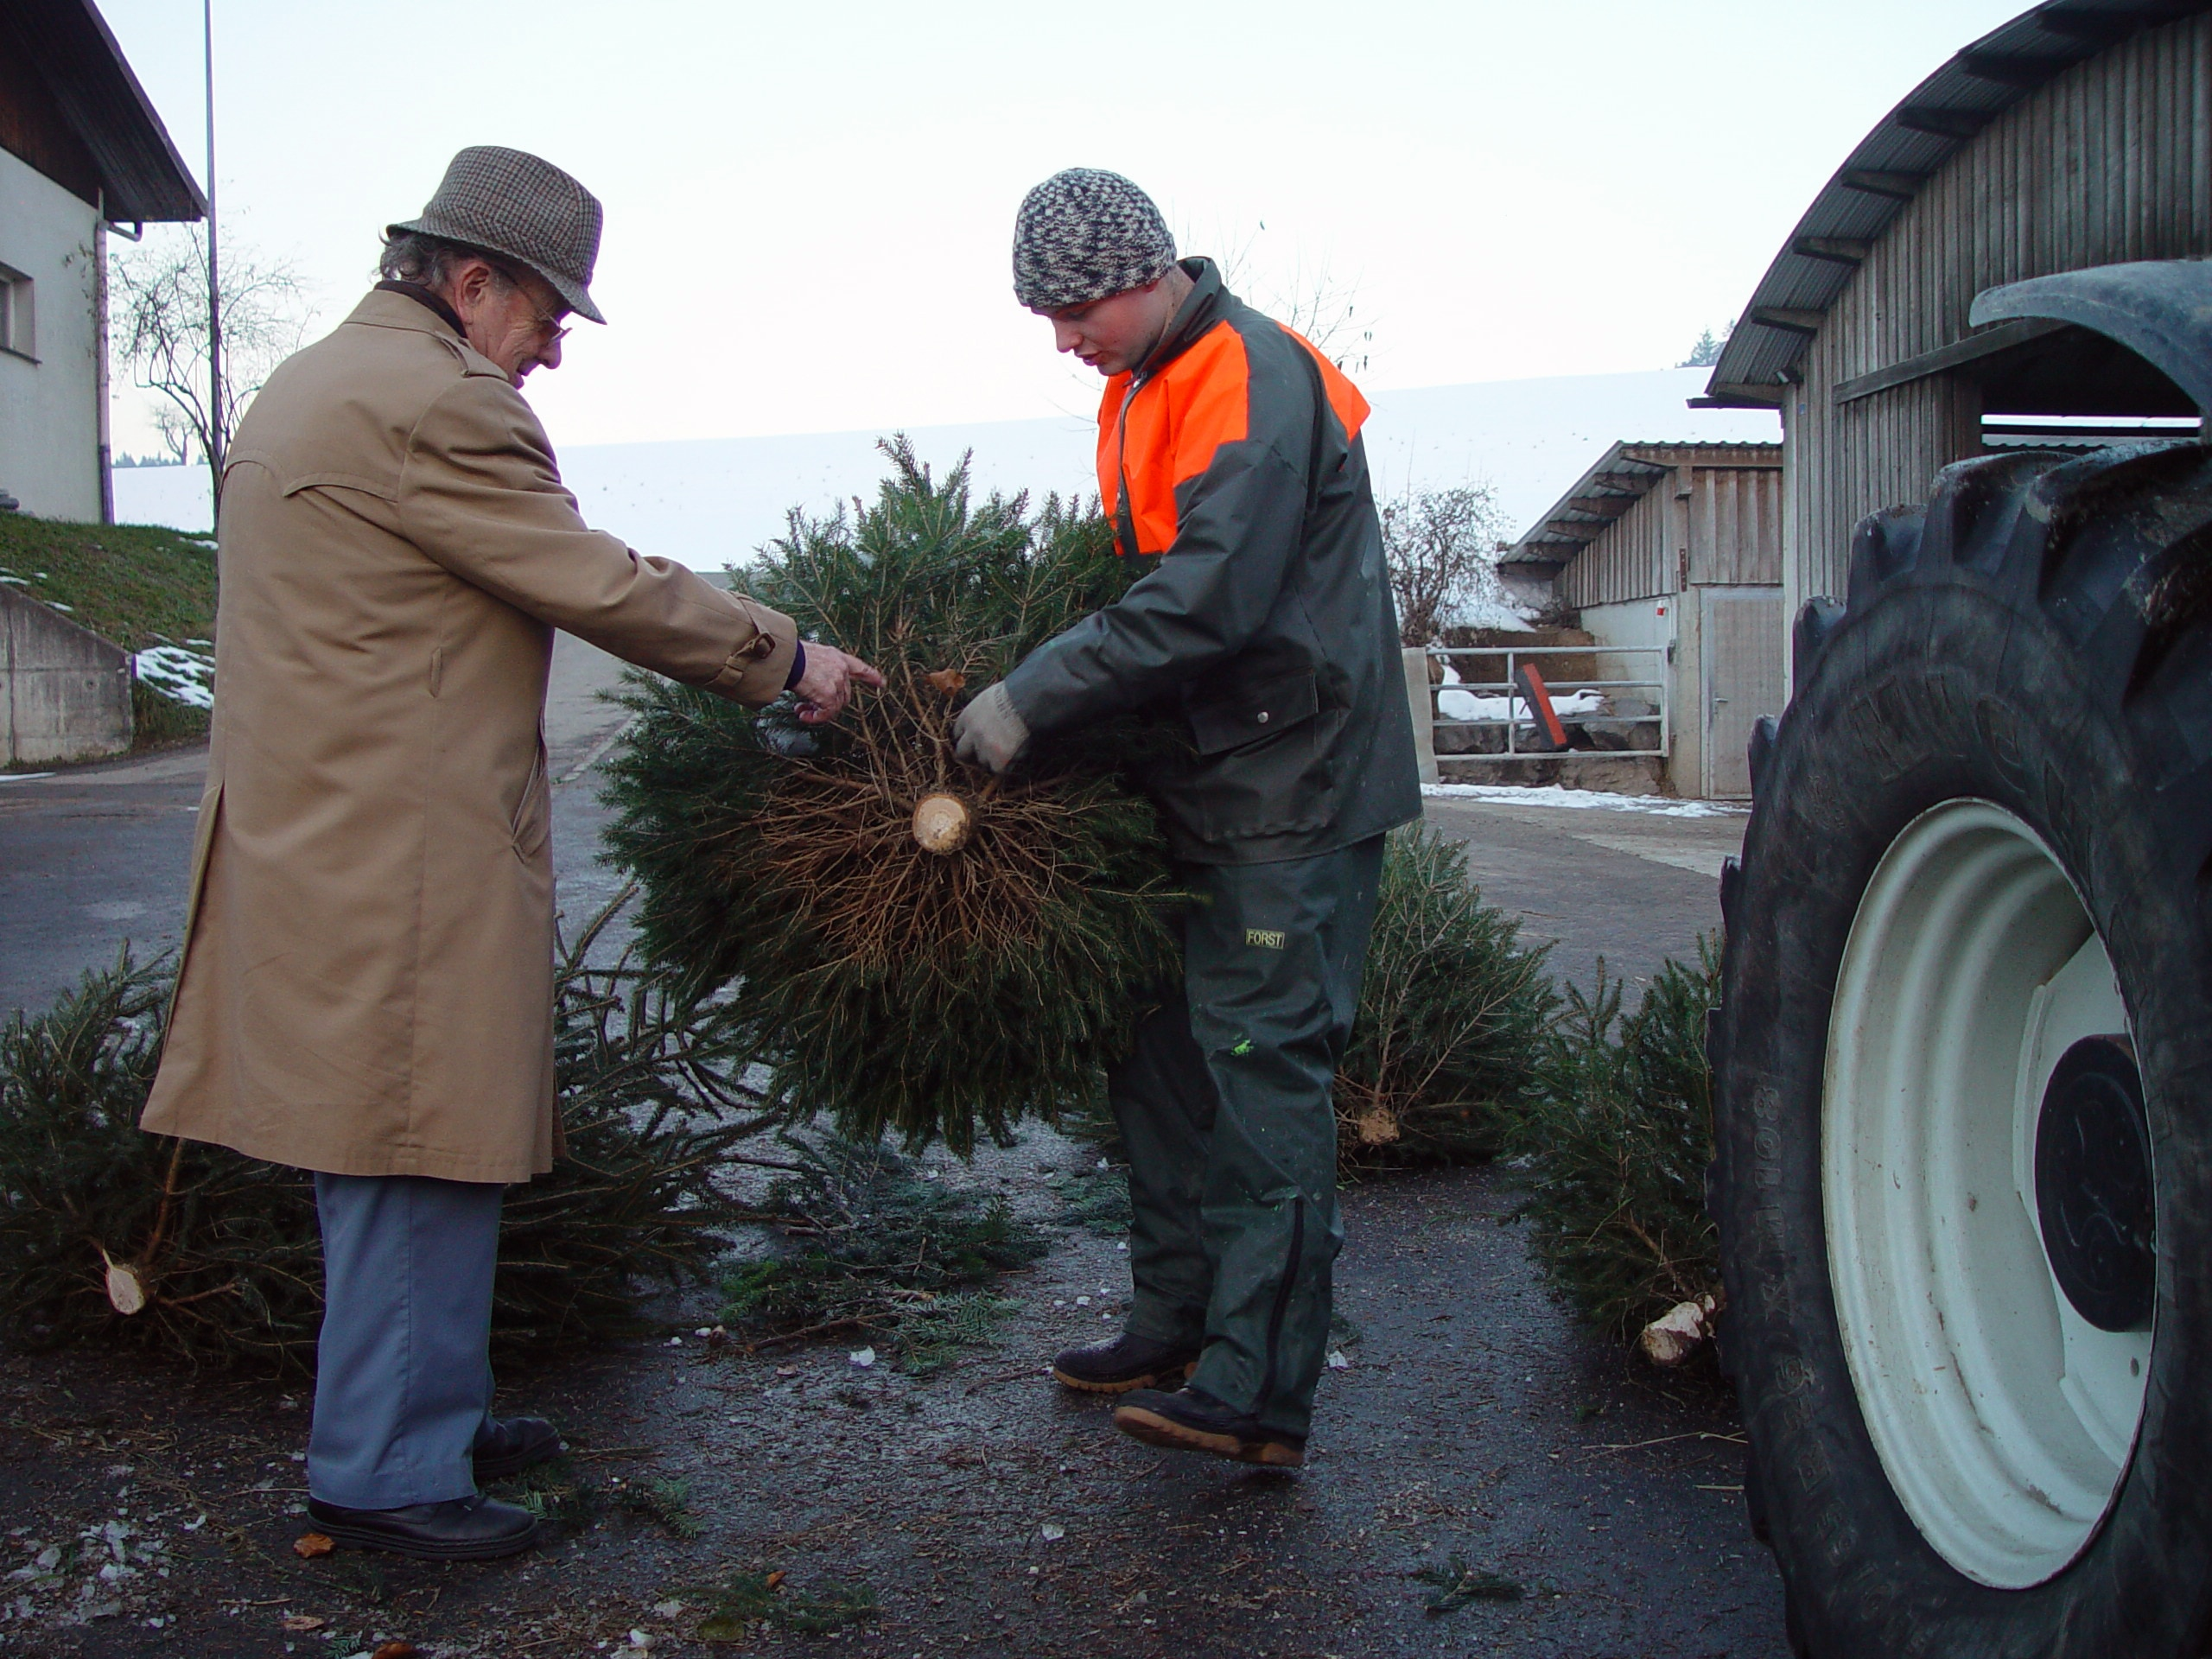 The Luder family delivers its trees to retailers or directly to private customers. Half of the family's income is derived from the Christmas tree business.